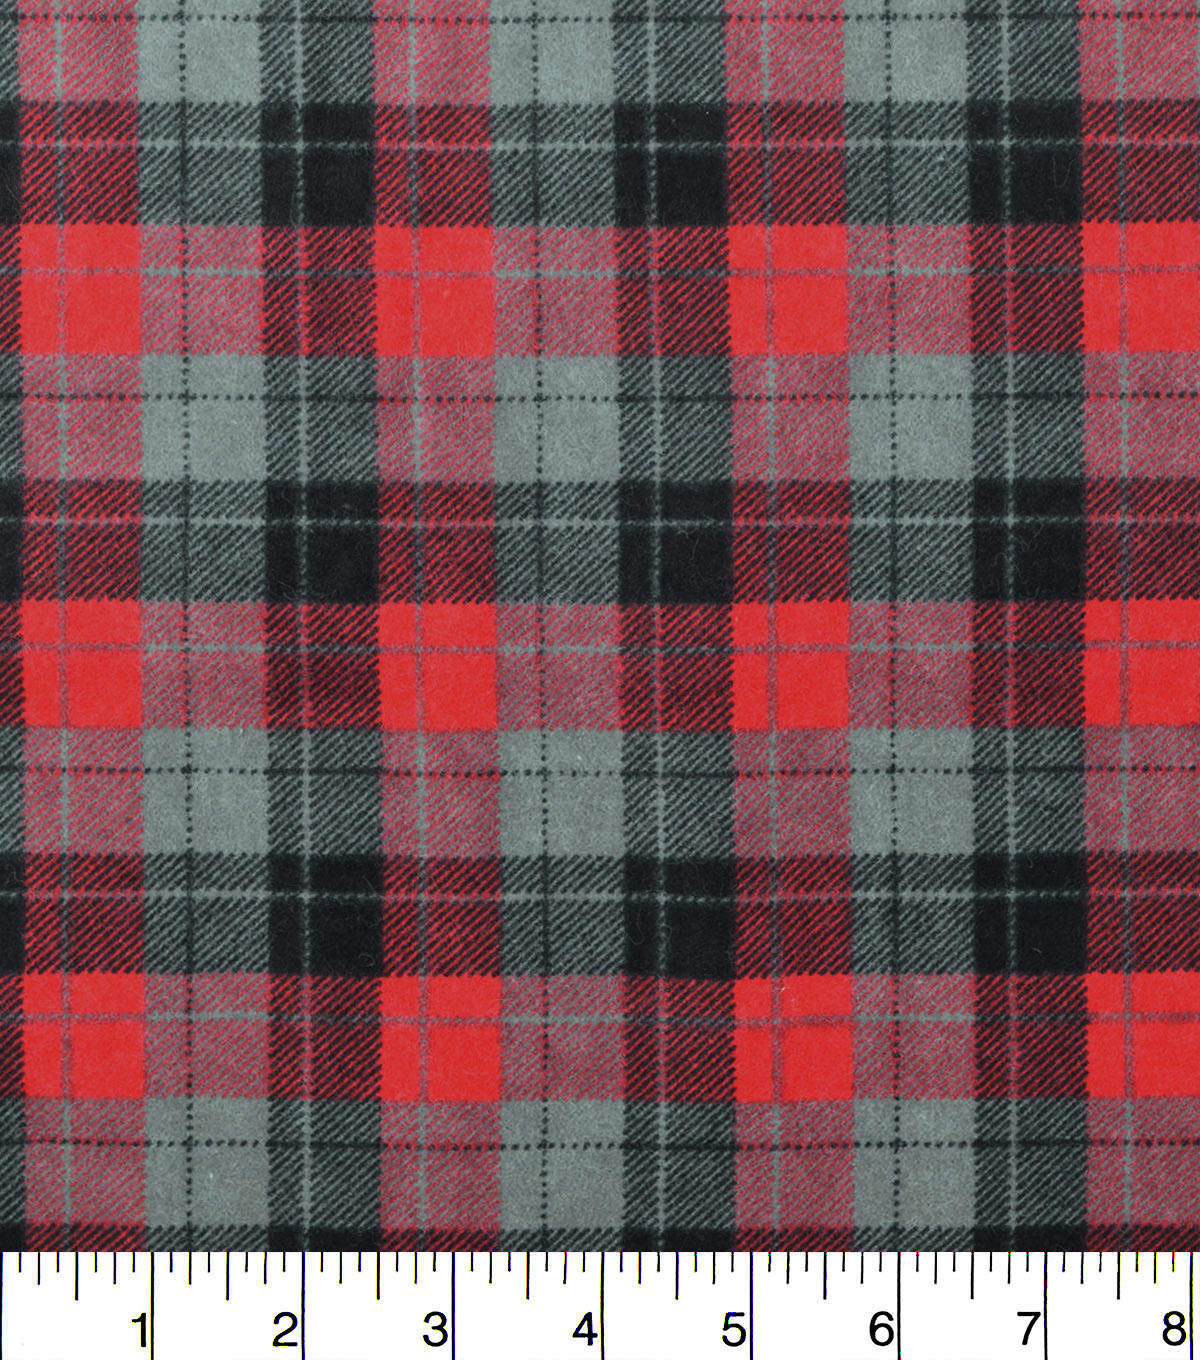 Snuggle Flannel Fabric -Skylar Red Black Plaid